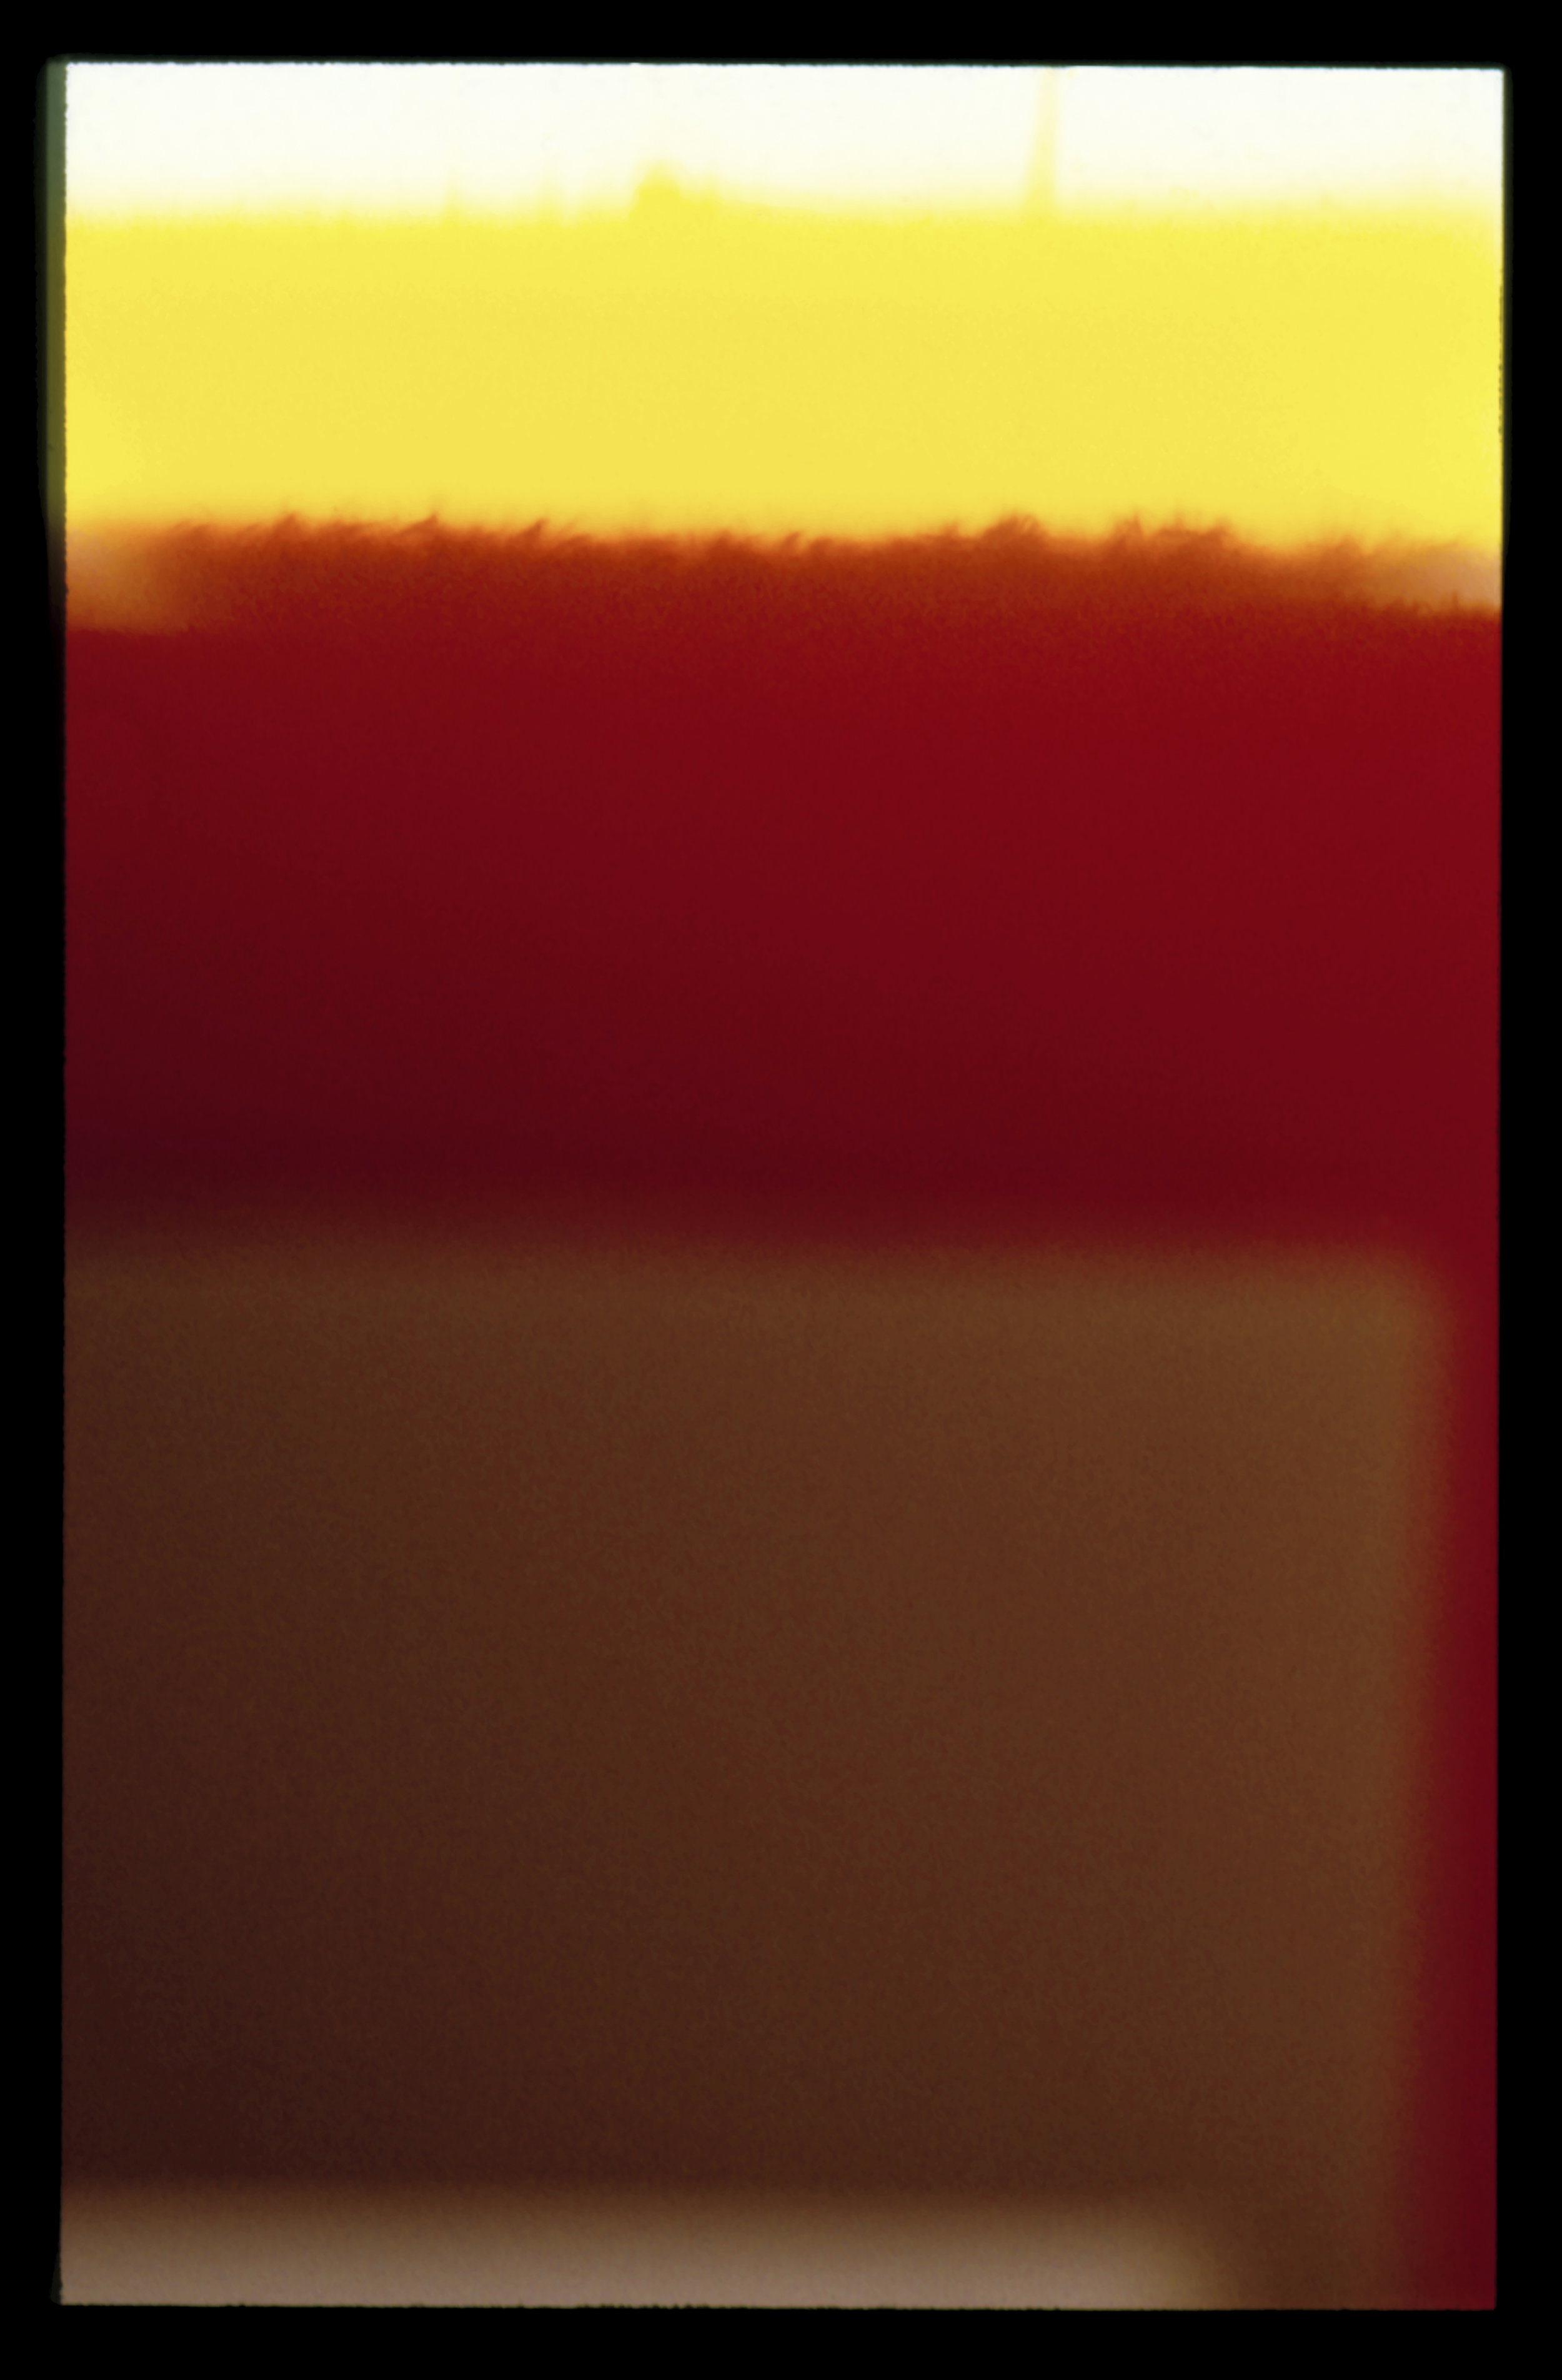 Robert Owen, Endings (Rothko died today) – Kodachrome 64, No. 21, 26/02/1970, 2009, from the series Endings, pigment ink-jet print, 80.0x52cm, Monash Gallery of Art, City of Monash Collection, courtesy of the artist and Arc One Gallery (Melbourne)